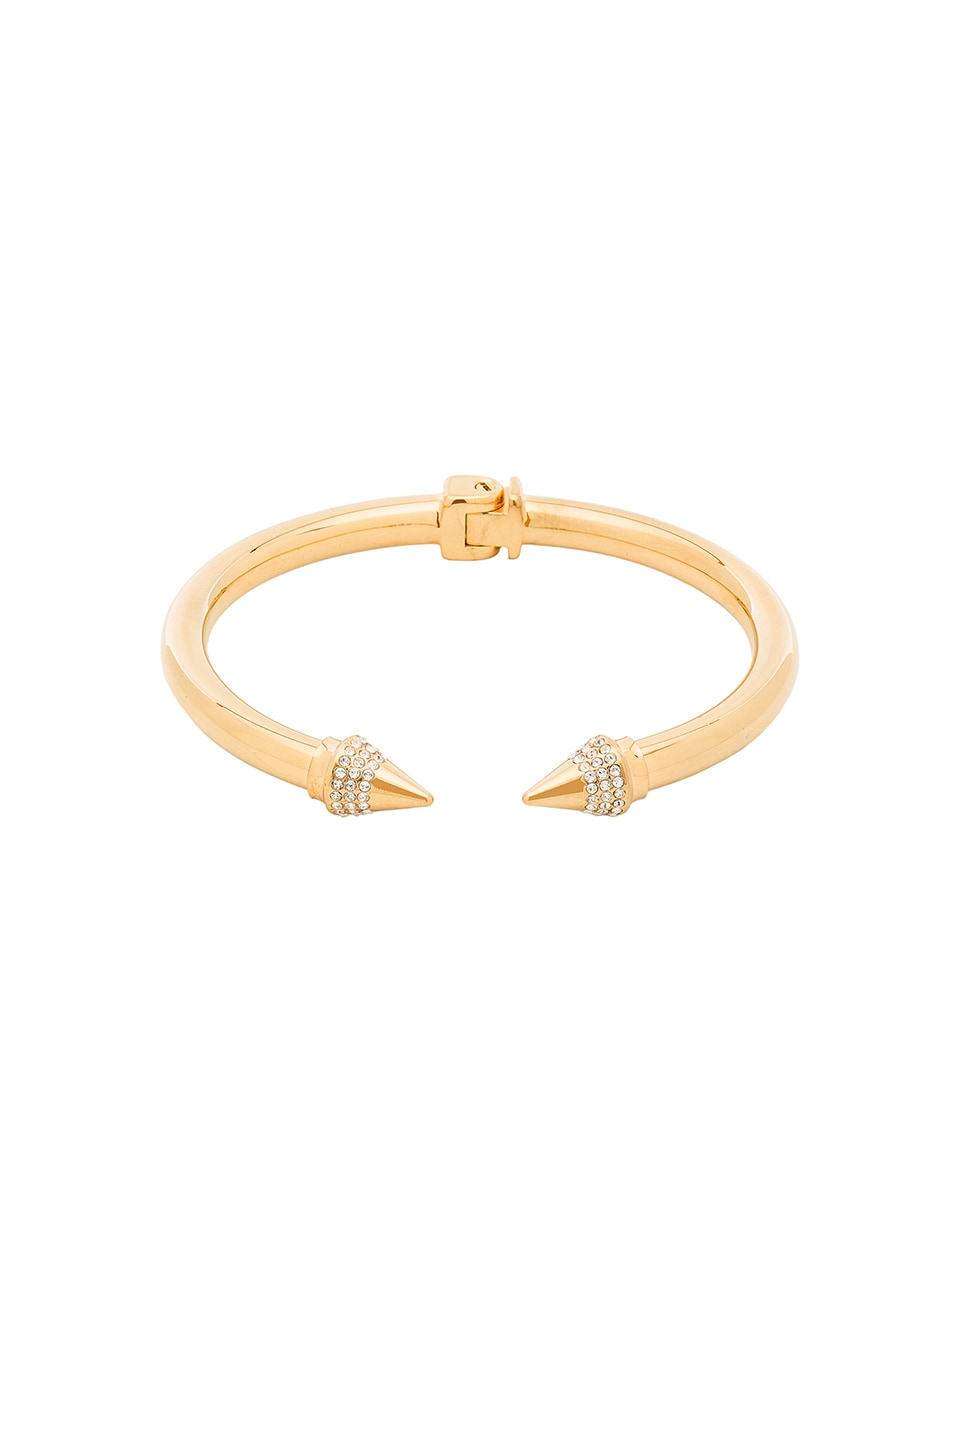 Vita Fede Mini Titan Crystal Bracelet in Gold/Clear